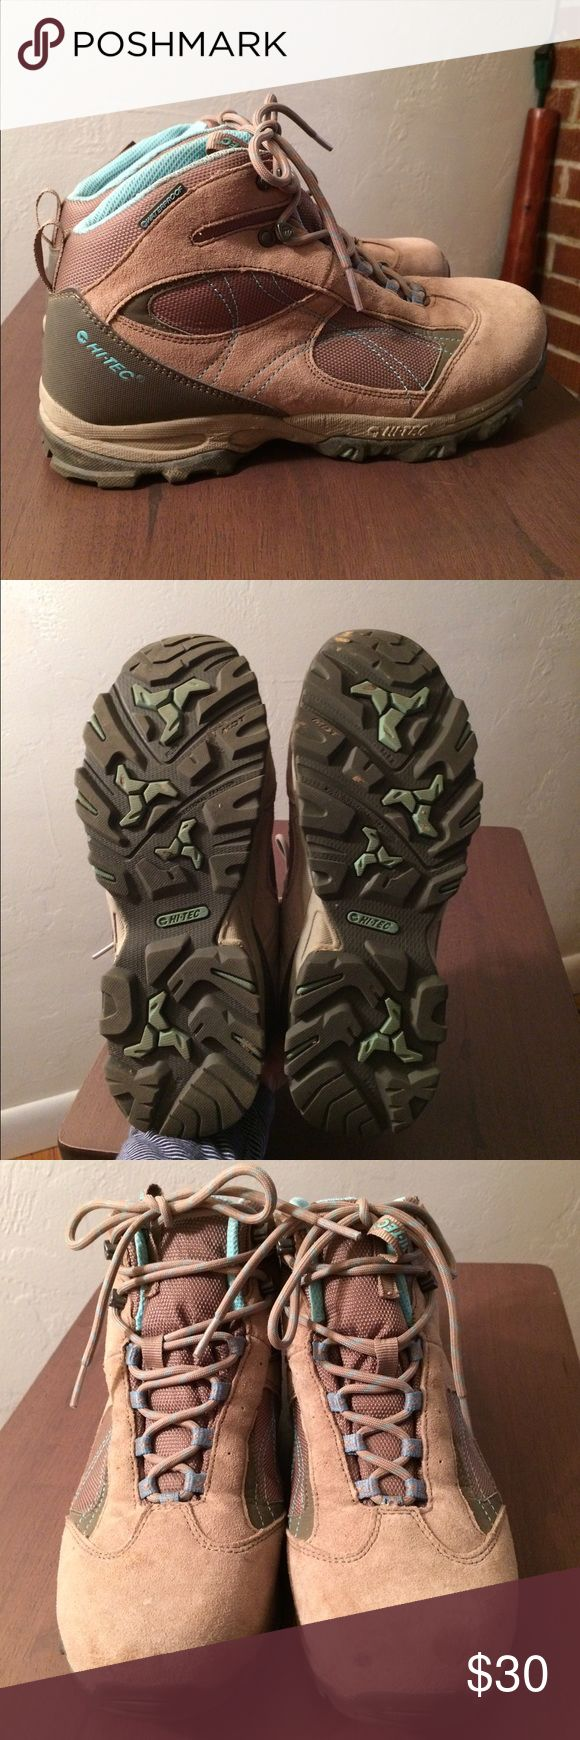 Hi Tec Women's Waterproof Hiking Boot Worn only 2x - Durable pair of ladies hiking boots, thick gor-tex sole, waterproof, & ready to hit the trails. Small spot on toe, may come off, other than that, like new. True to size 8.5 Shoes Winter & Rain Boots